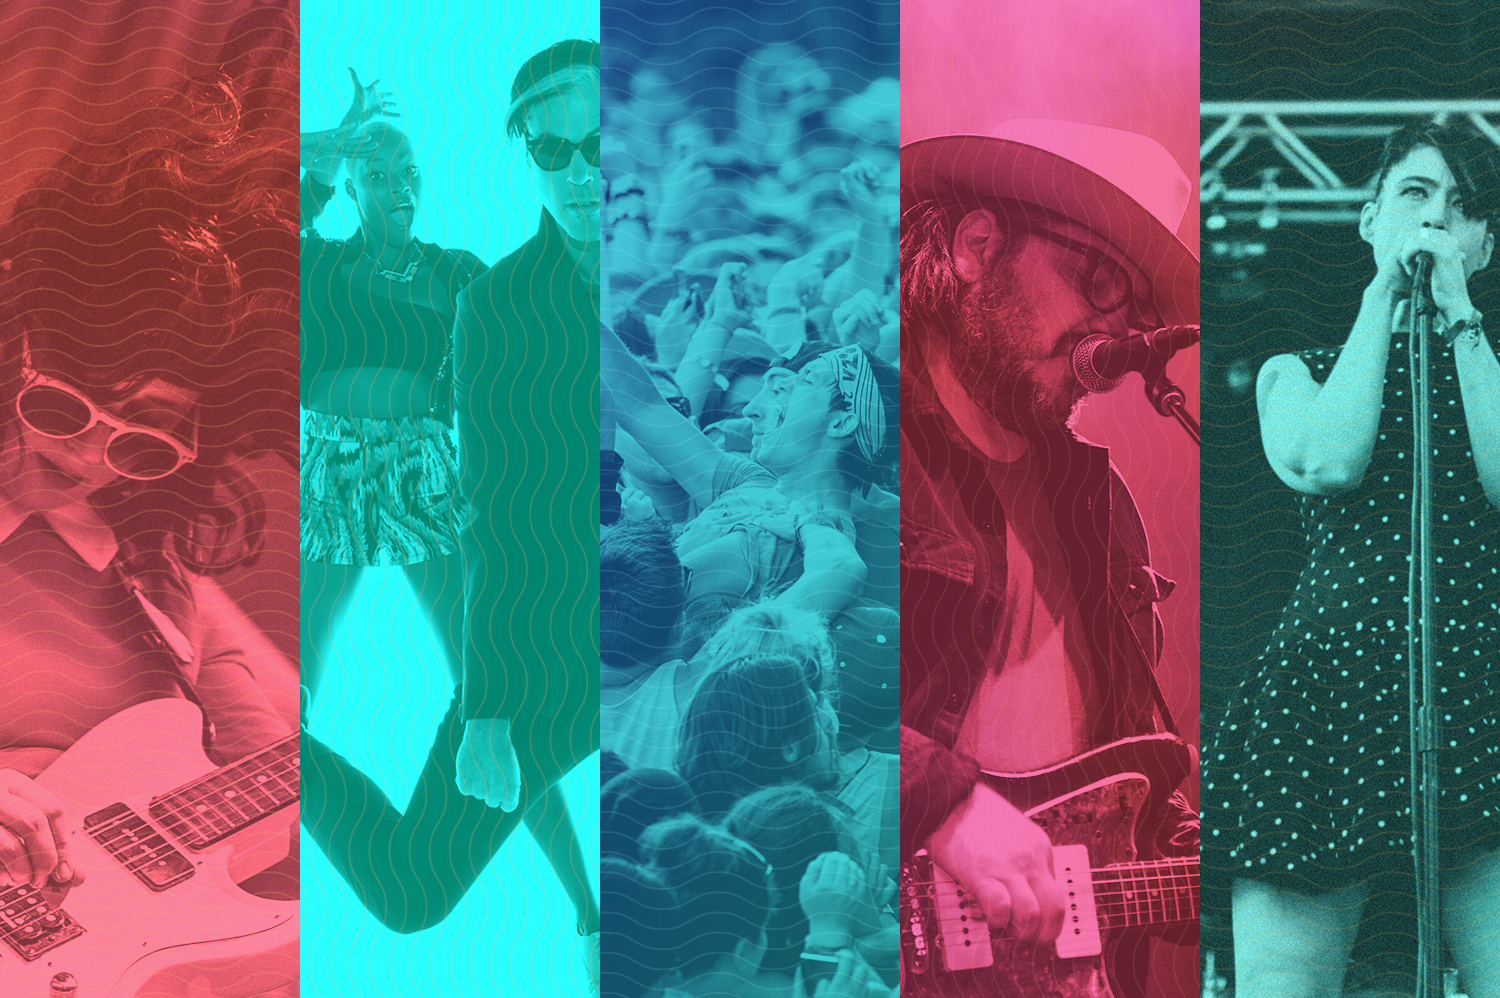 The bands are coming, the bands are coming! From left: Waxahatchee, Fitz and the Tantrums, Lollapalooza, Wilco's Jeff Tweedy and Julie Ruin. Photos by Matt Lief Anderson (Waxahatchee), Will Rice (Lolla), Matt Lief Anderson (Tweedy) and Kristina Pedersen (Julie Ruin).